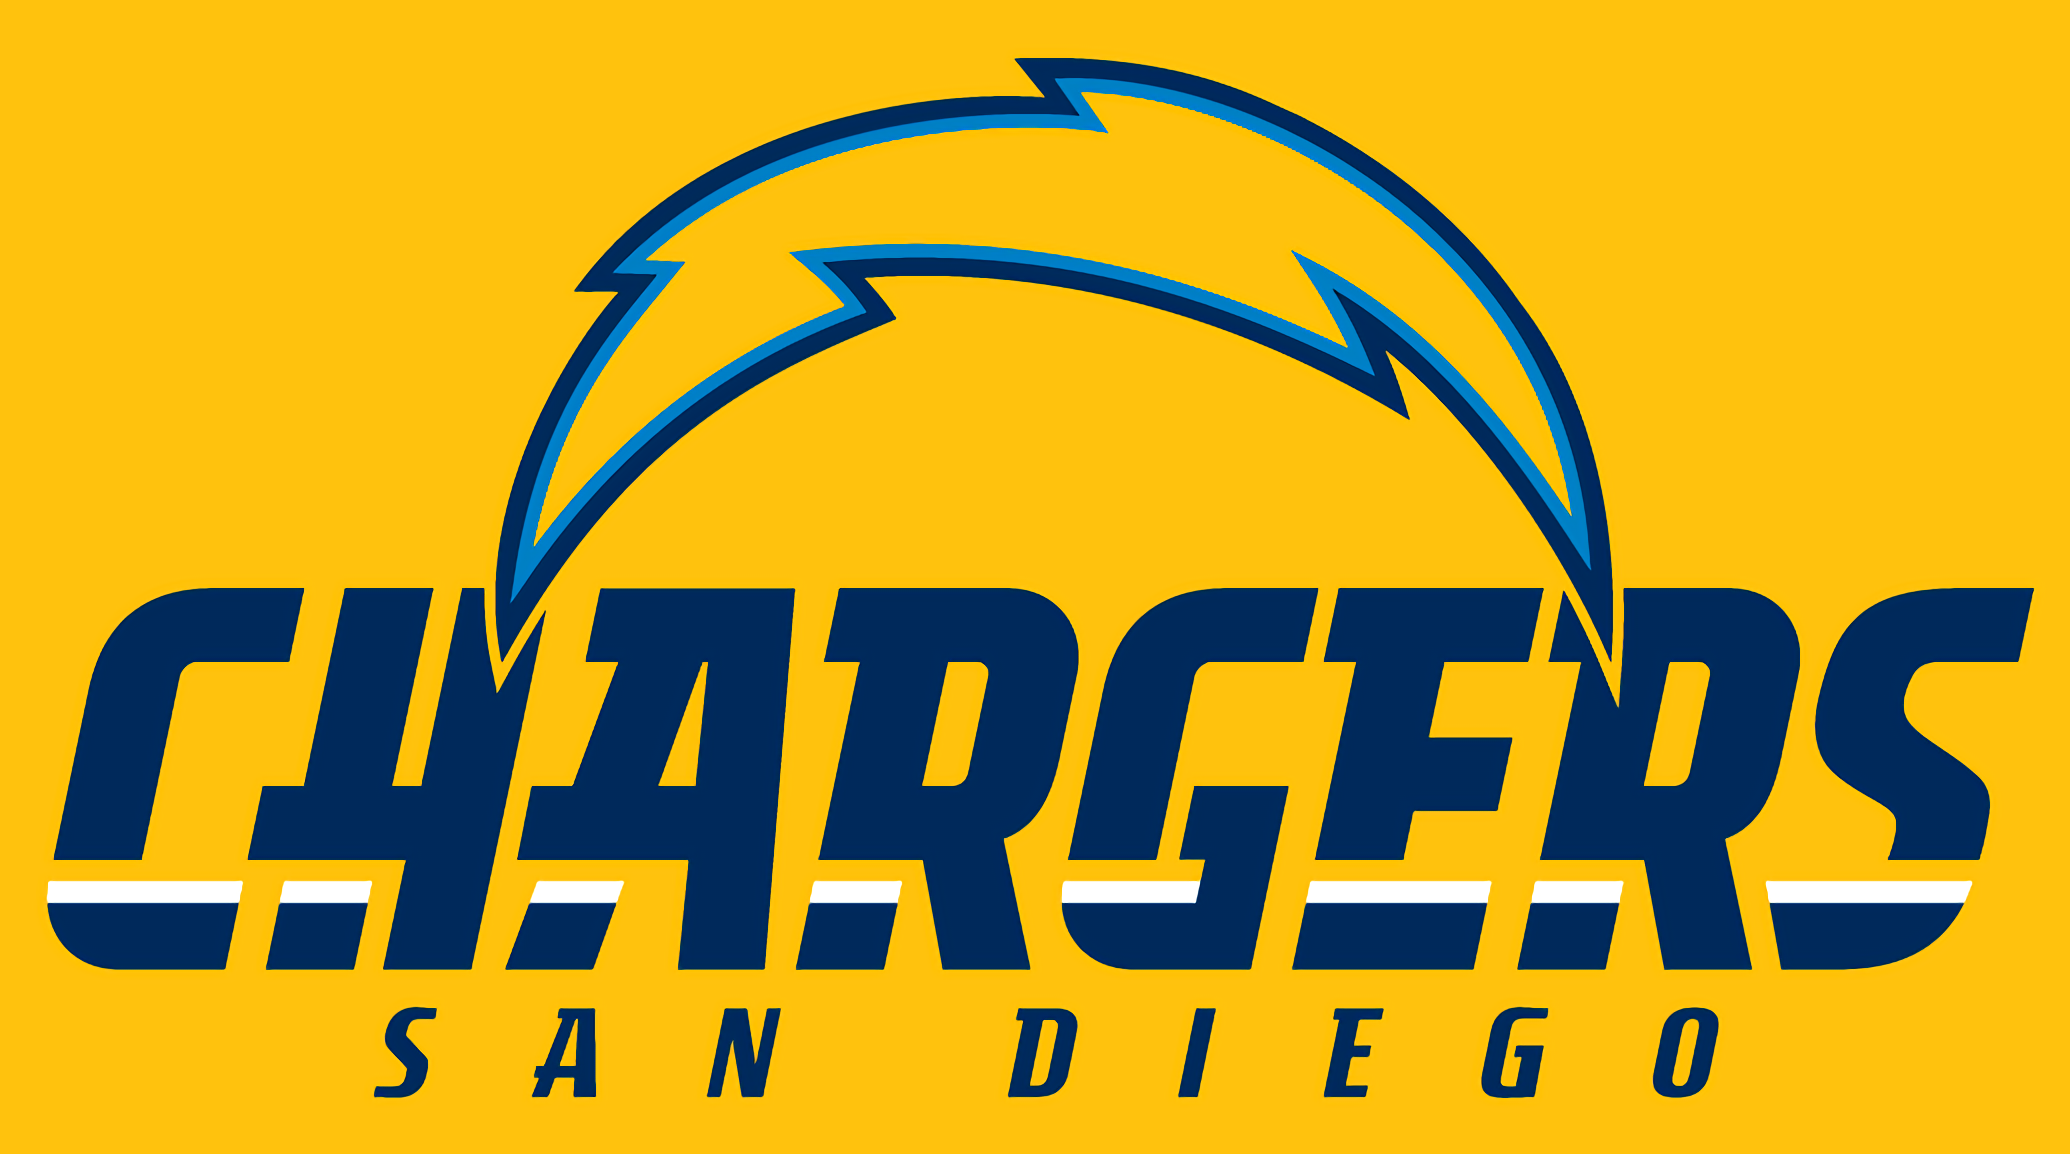 Los Angeles Chargers Hd Wallpaper Background Image 2070x1154